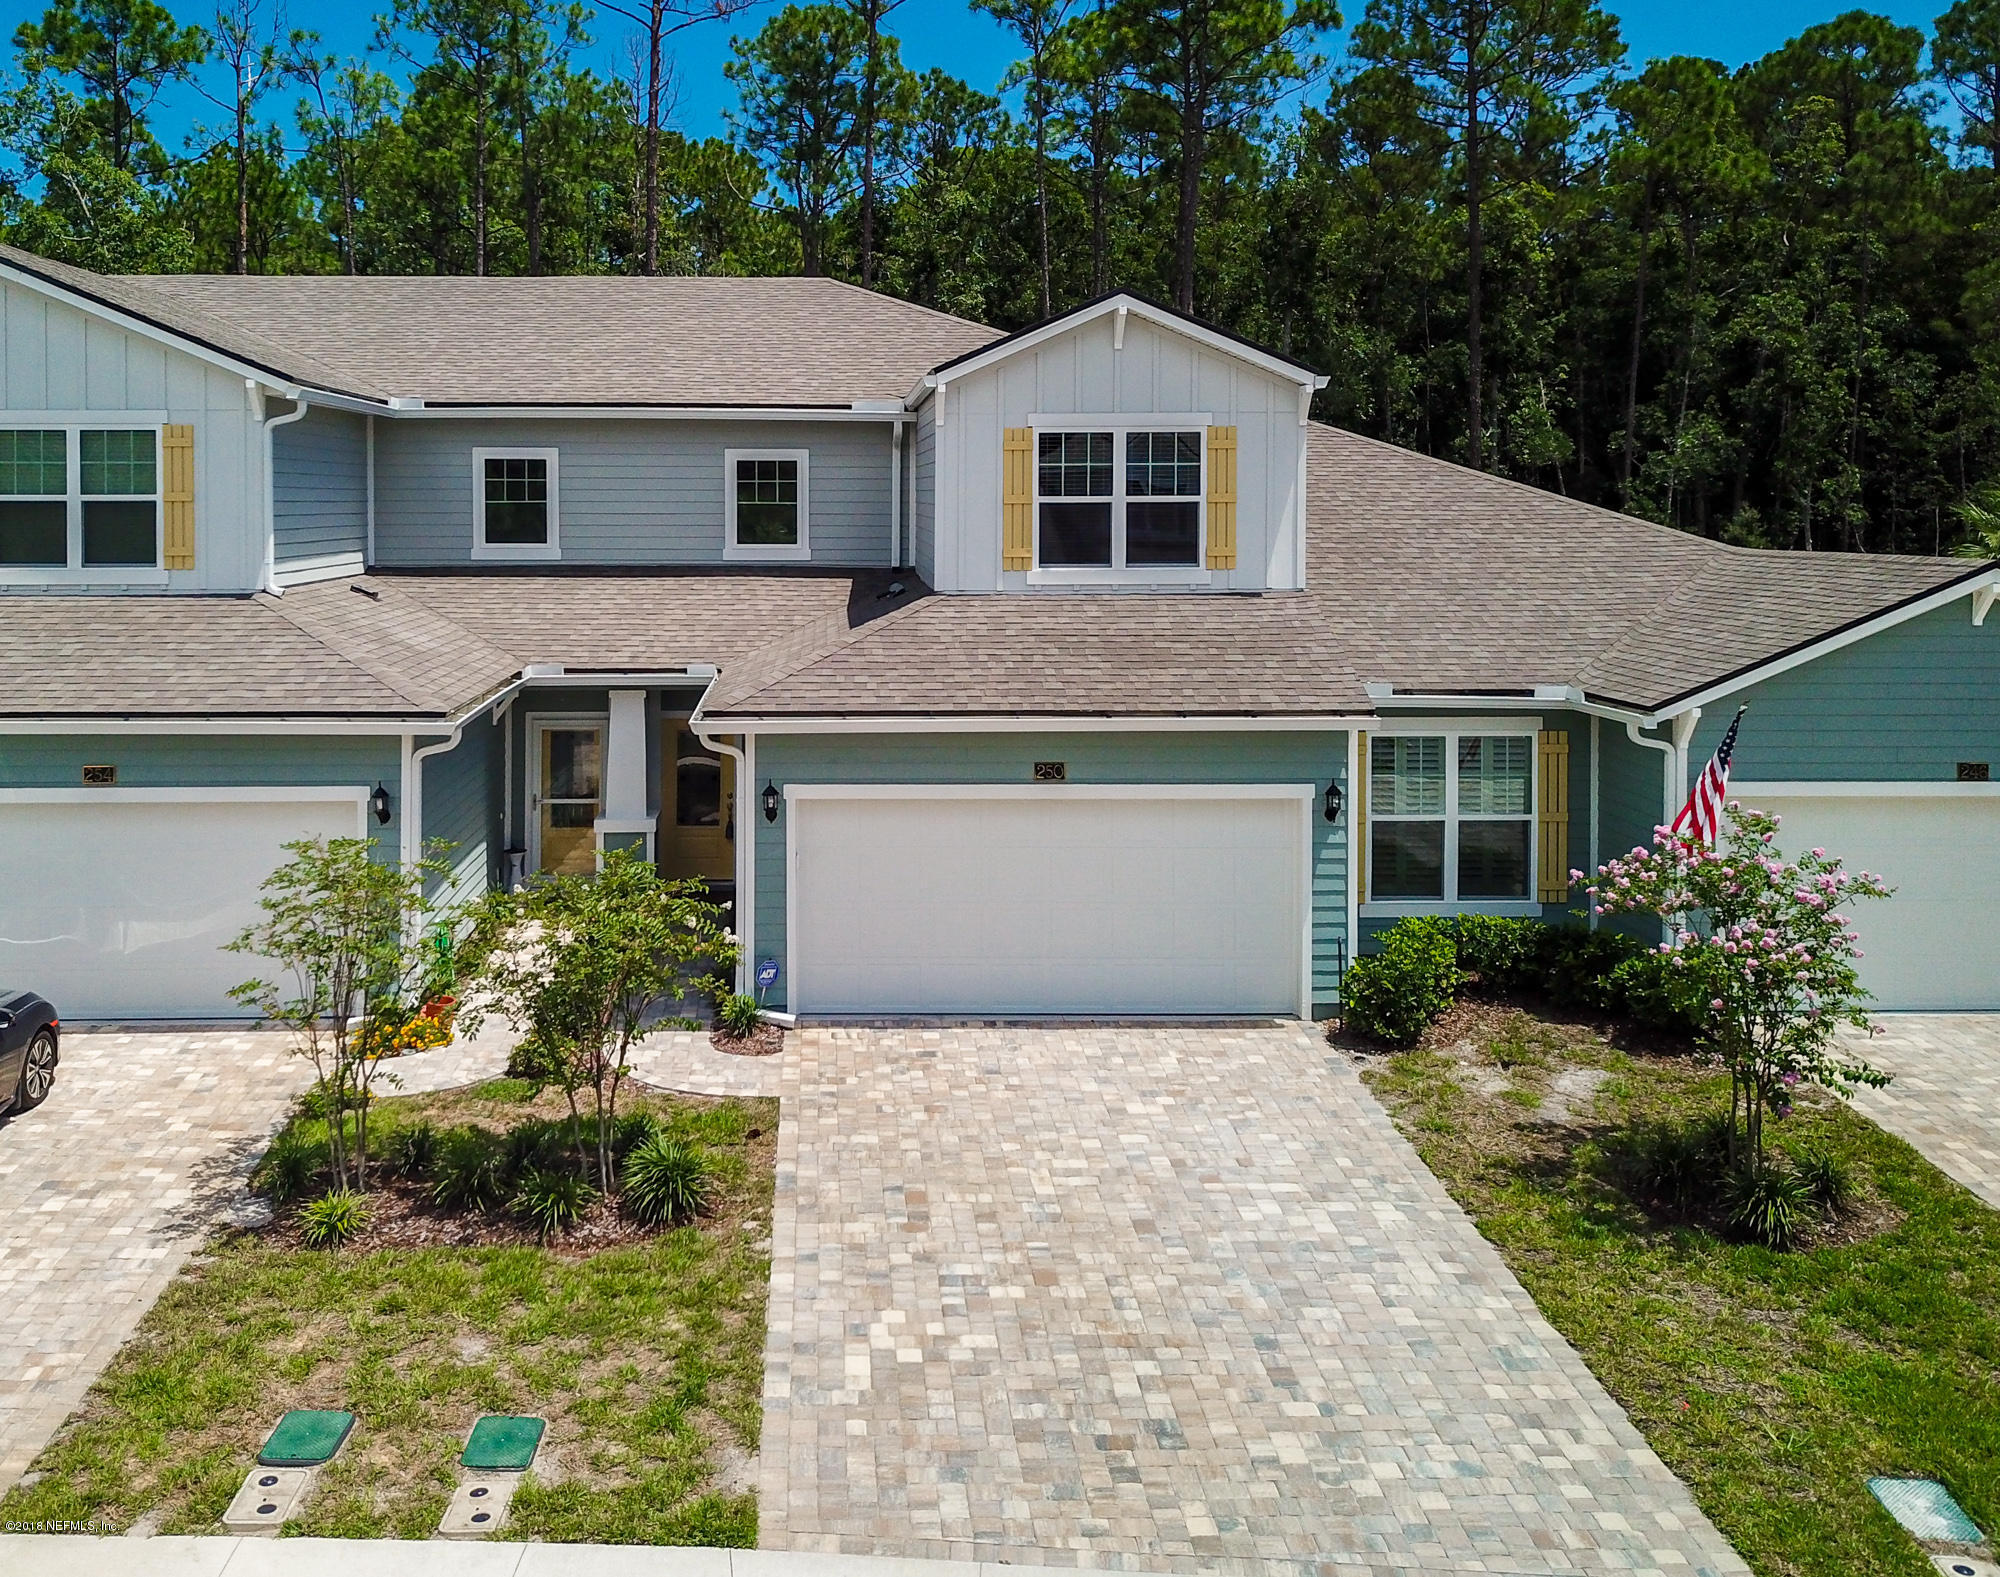 250 PINDO PALM, PONTE VEDRA, FLORIDA 32081, 3 Bedrooms Bedrooms, ,2 BathroomsBathrooms,Residential - single family,For sale,PINDO PALM,951273